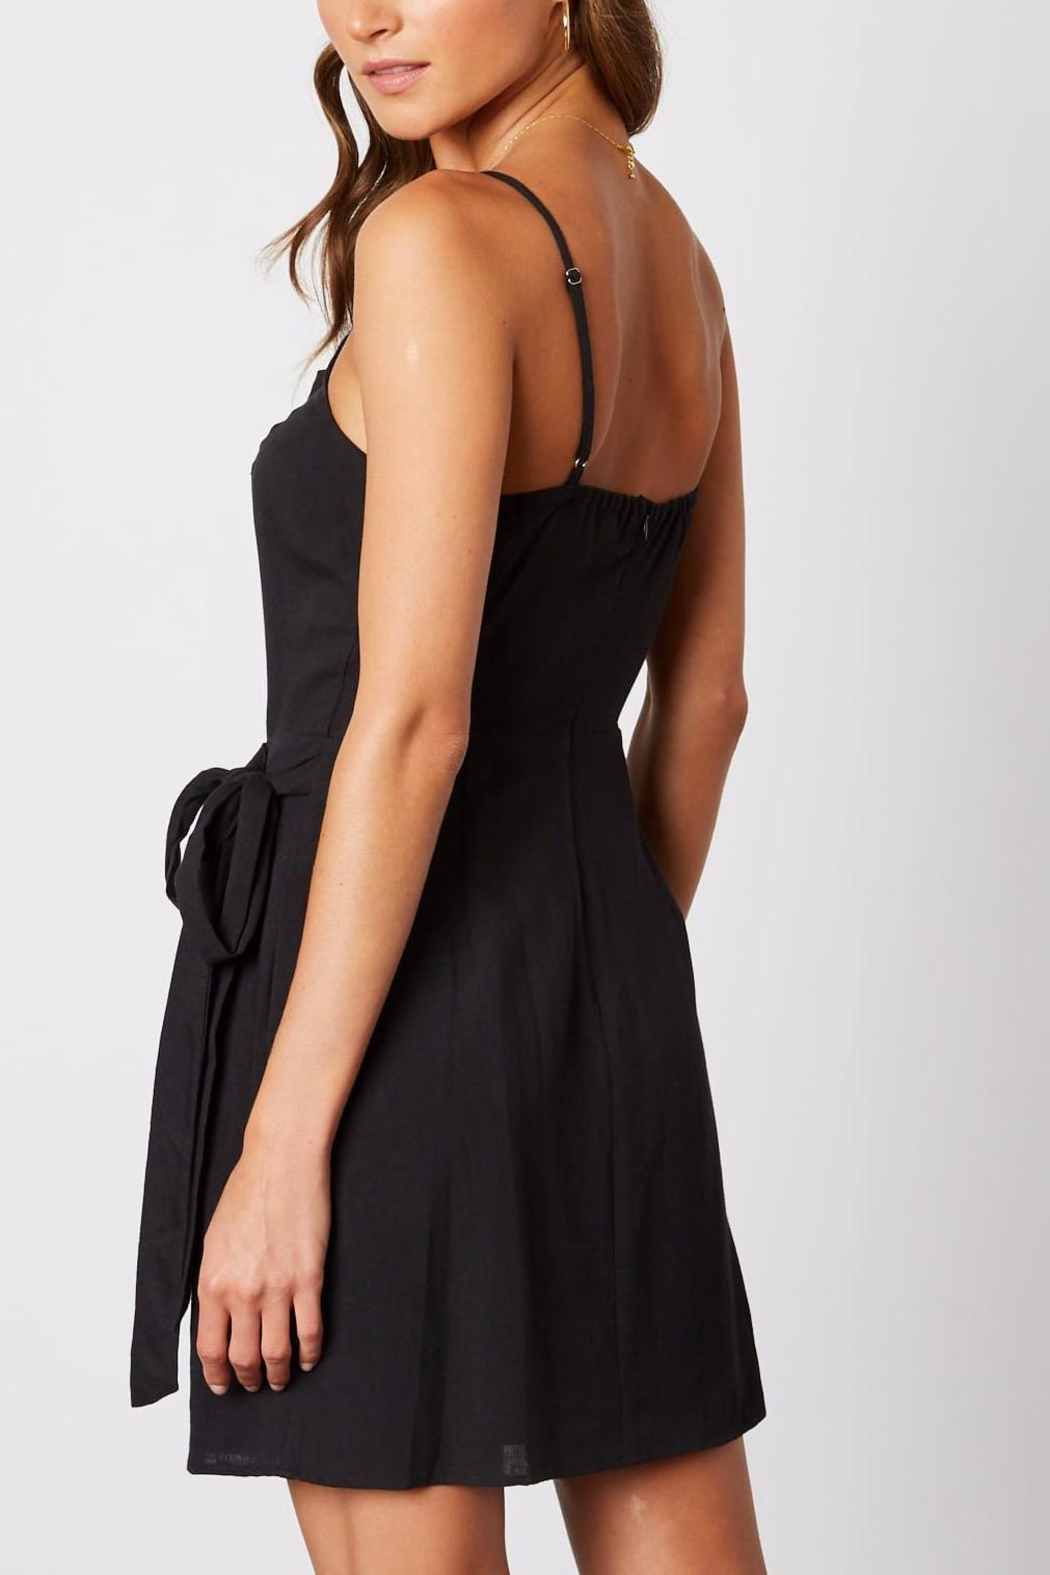 Cotton Candy One-Shoulder Ruffle Dress - Side Cropped Image